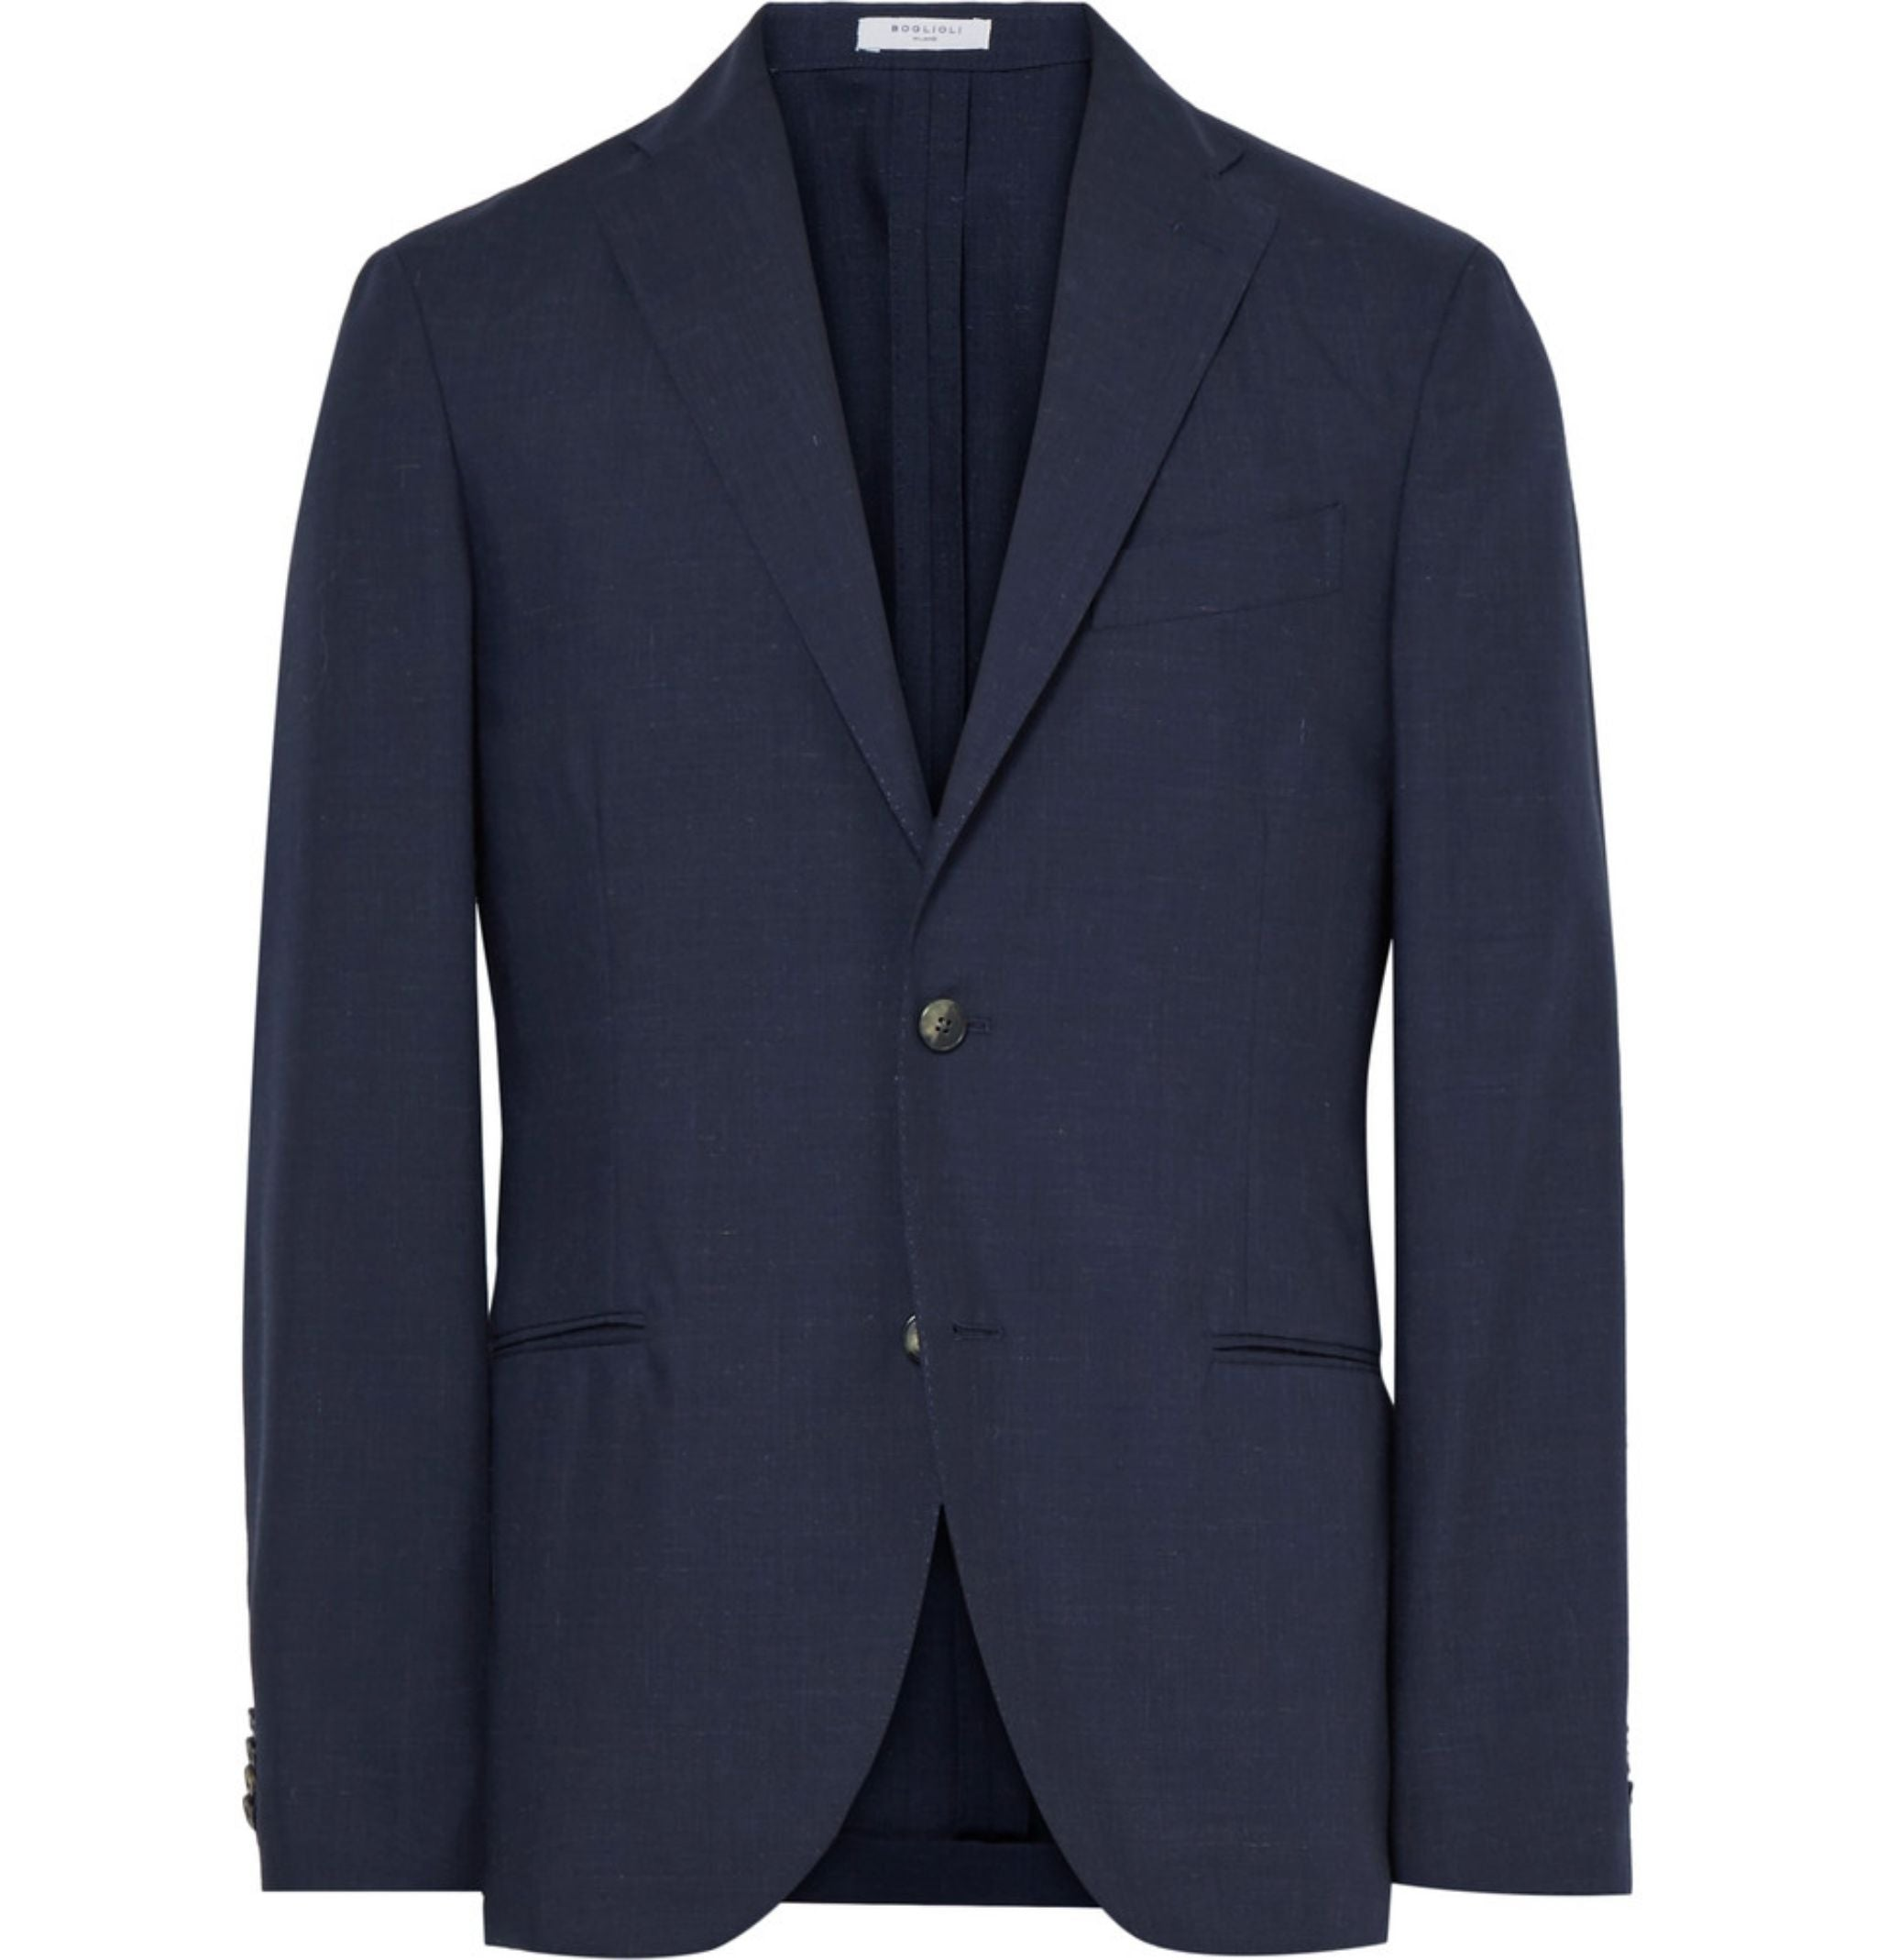 sport coat for spring and summer - navy blue blazer by Boglioli